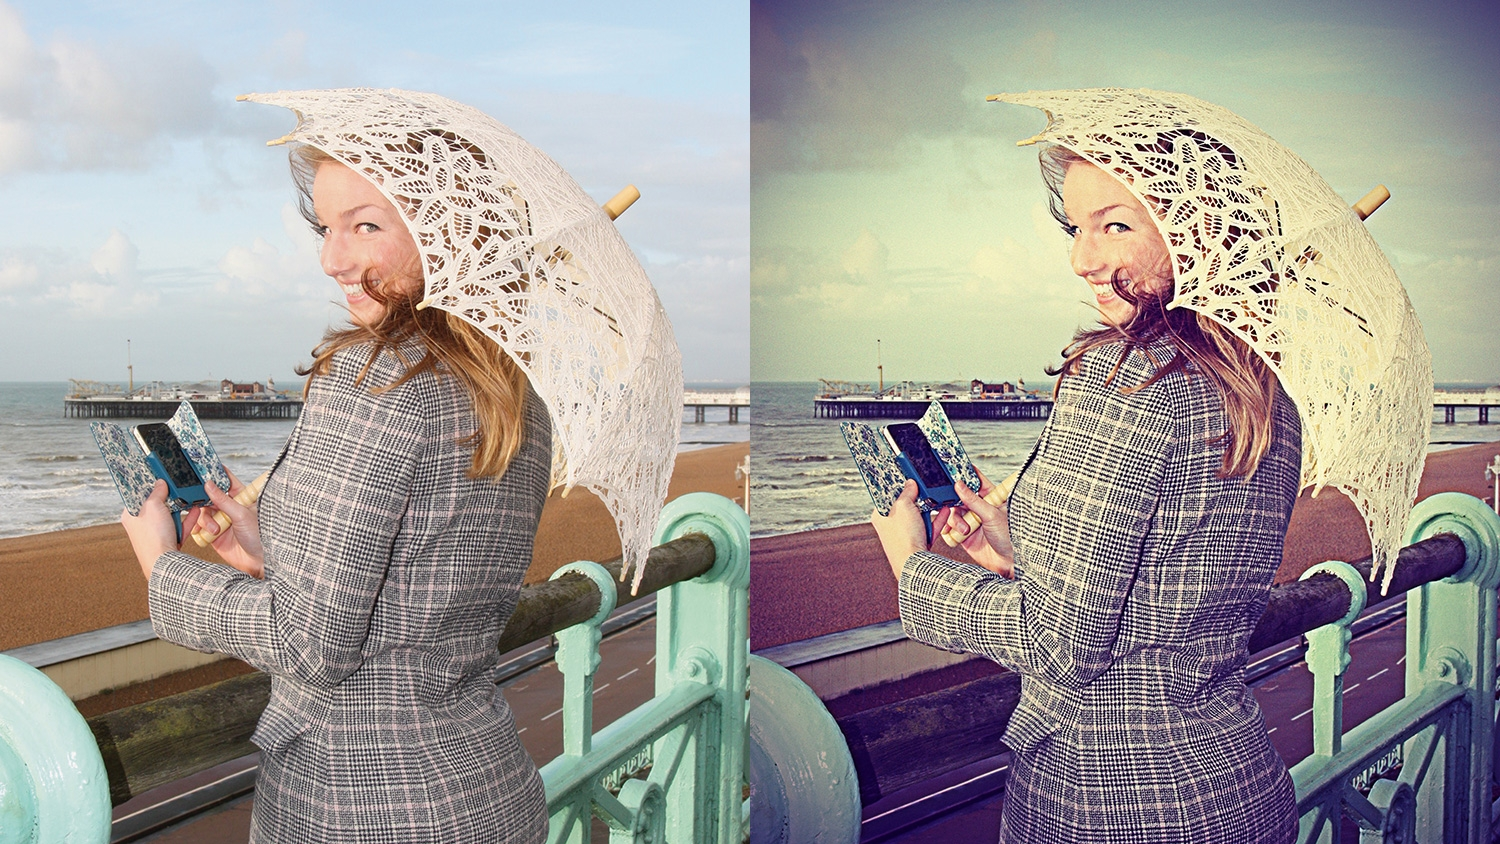 Apply a quick vintage look in Photoshop | Creative Bloq